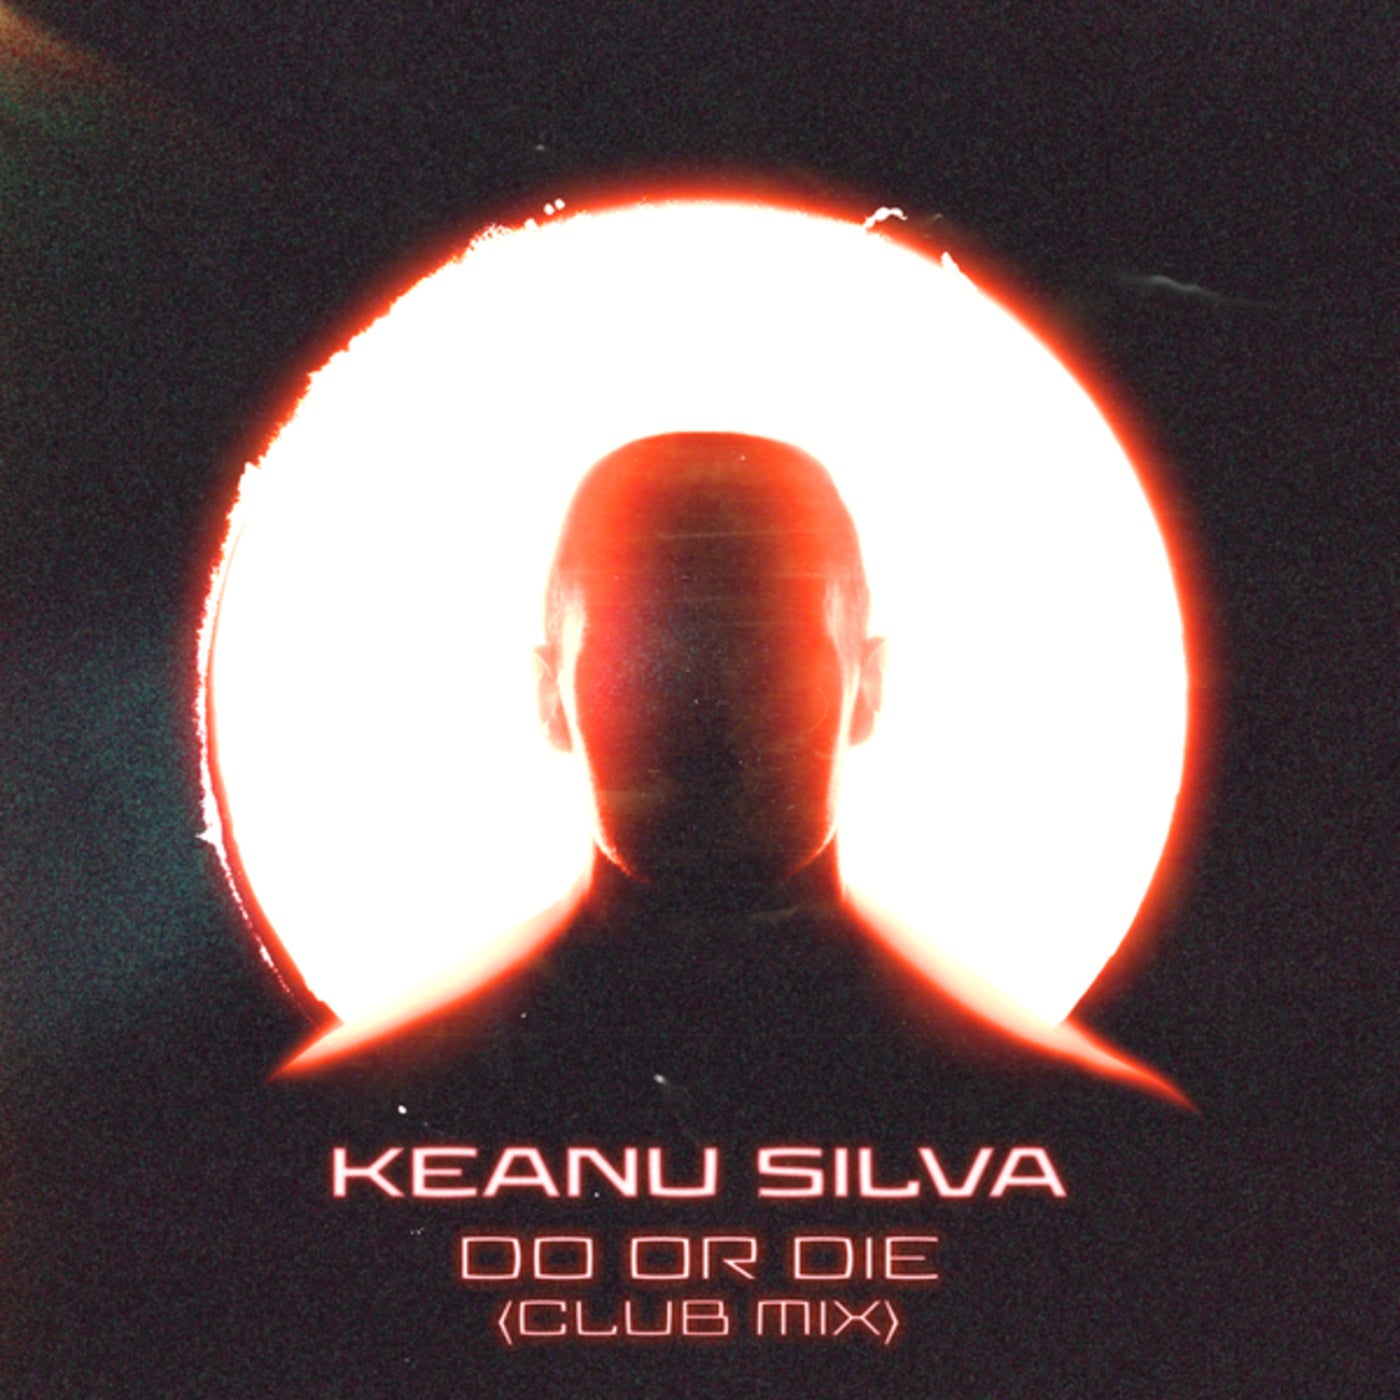 Keanu Silva - Do Or Die (Extended Club Mix)